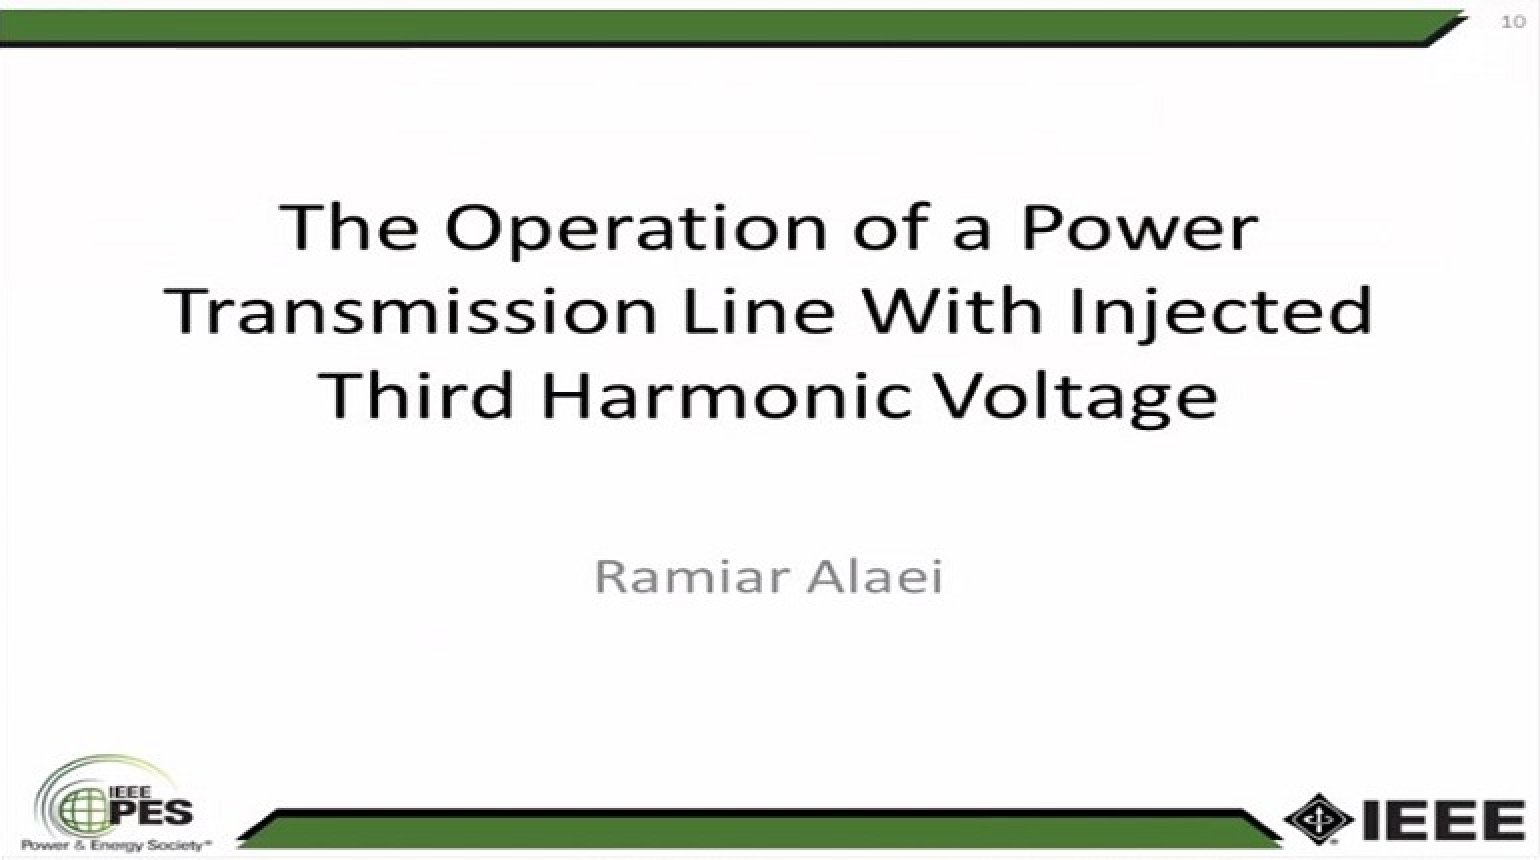 The Operation of a Power Transmission Line With Injected Third Harmonic Voltage